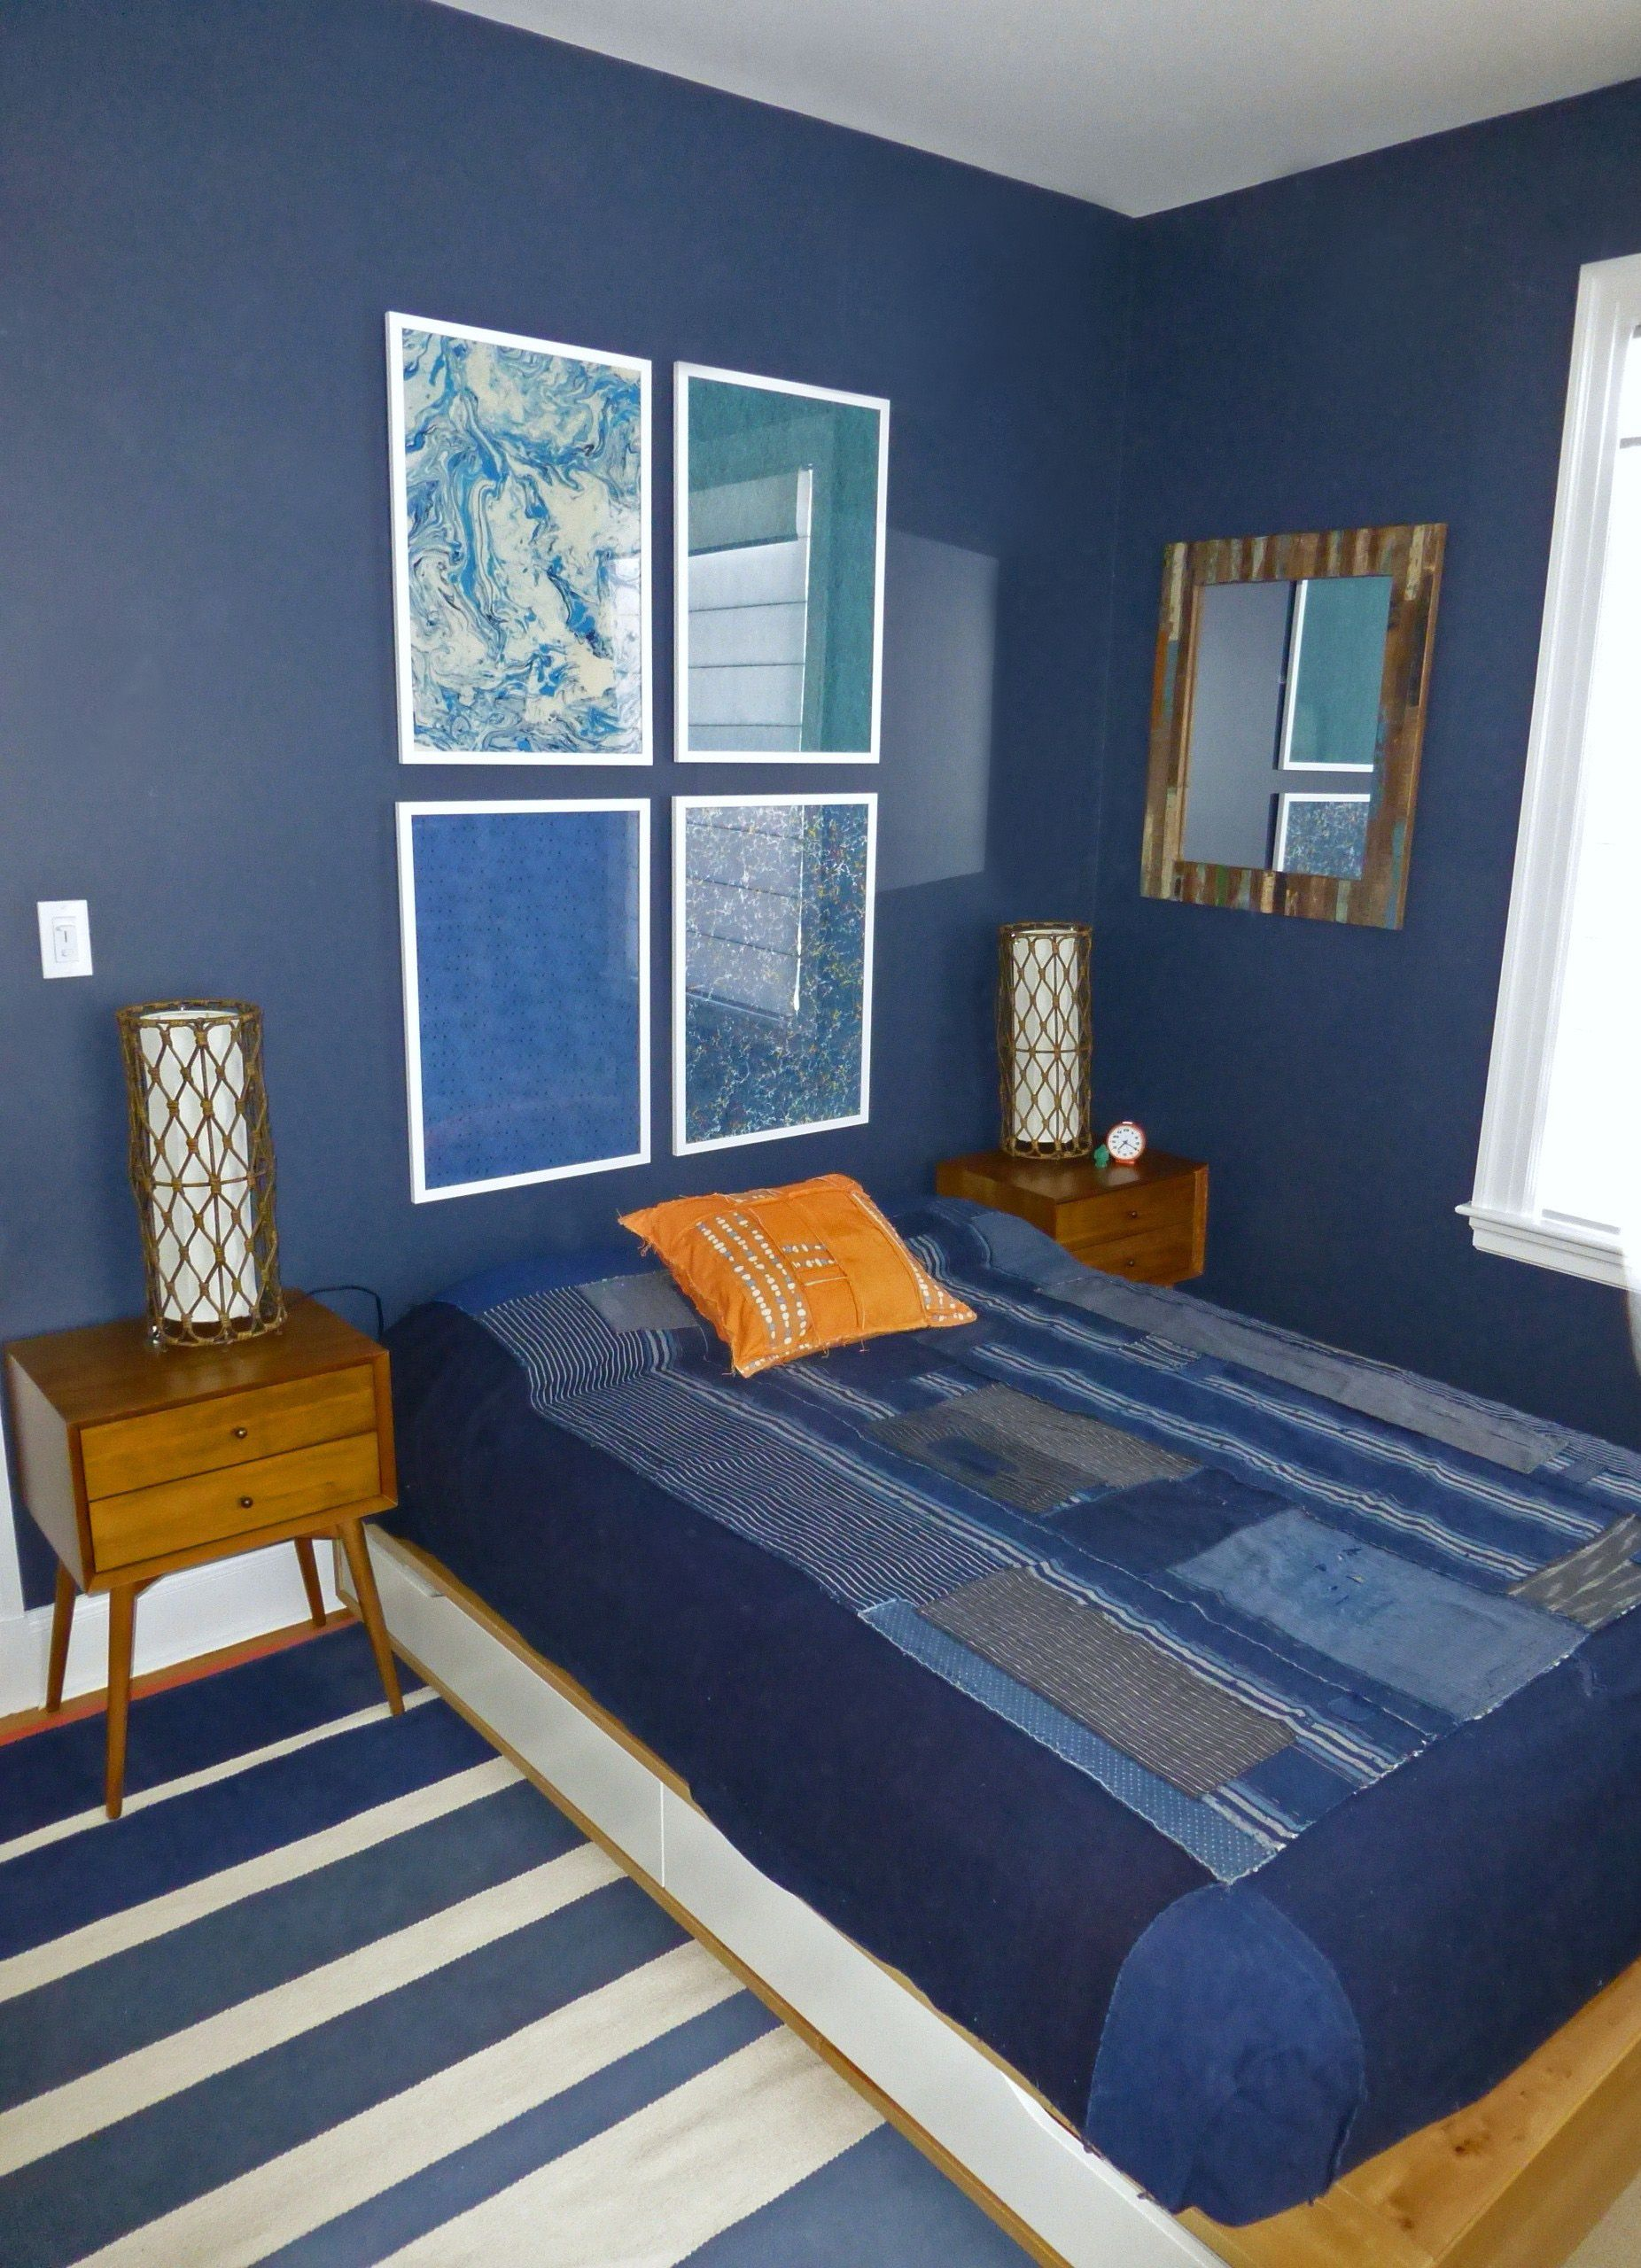 Bedspread design ideas - Young Man S Bedroom In Benjamin Moore Hale Navy Walls With Japanese Boro Textile Bedspread